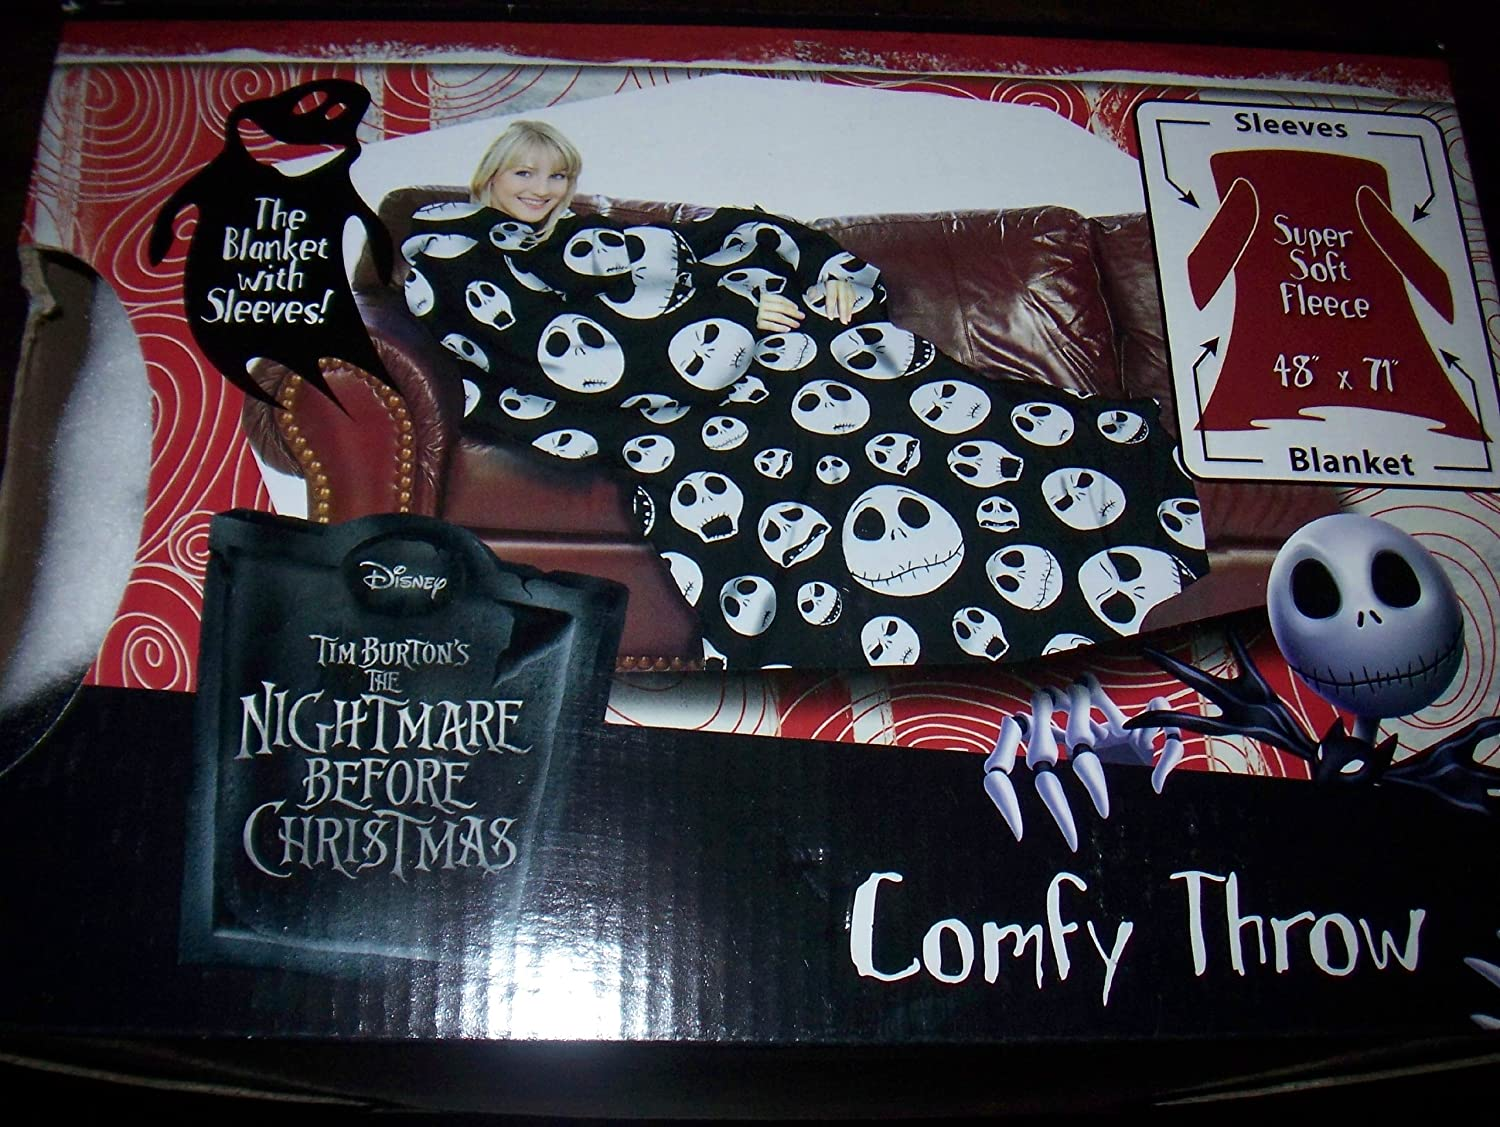 Amazon.com: Nightmare Before Christmas Comfy Throw Snuggie: Home ...